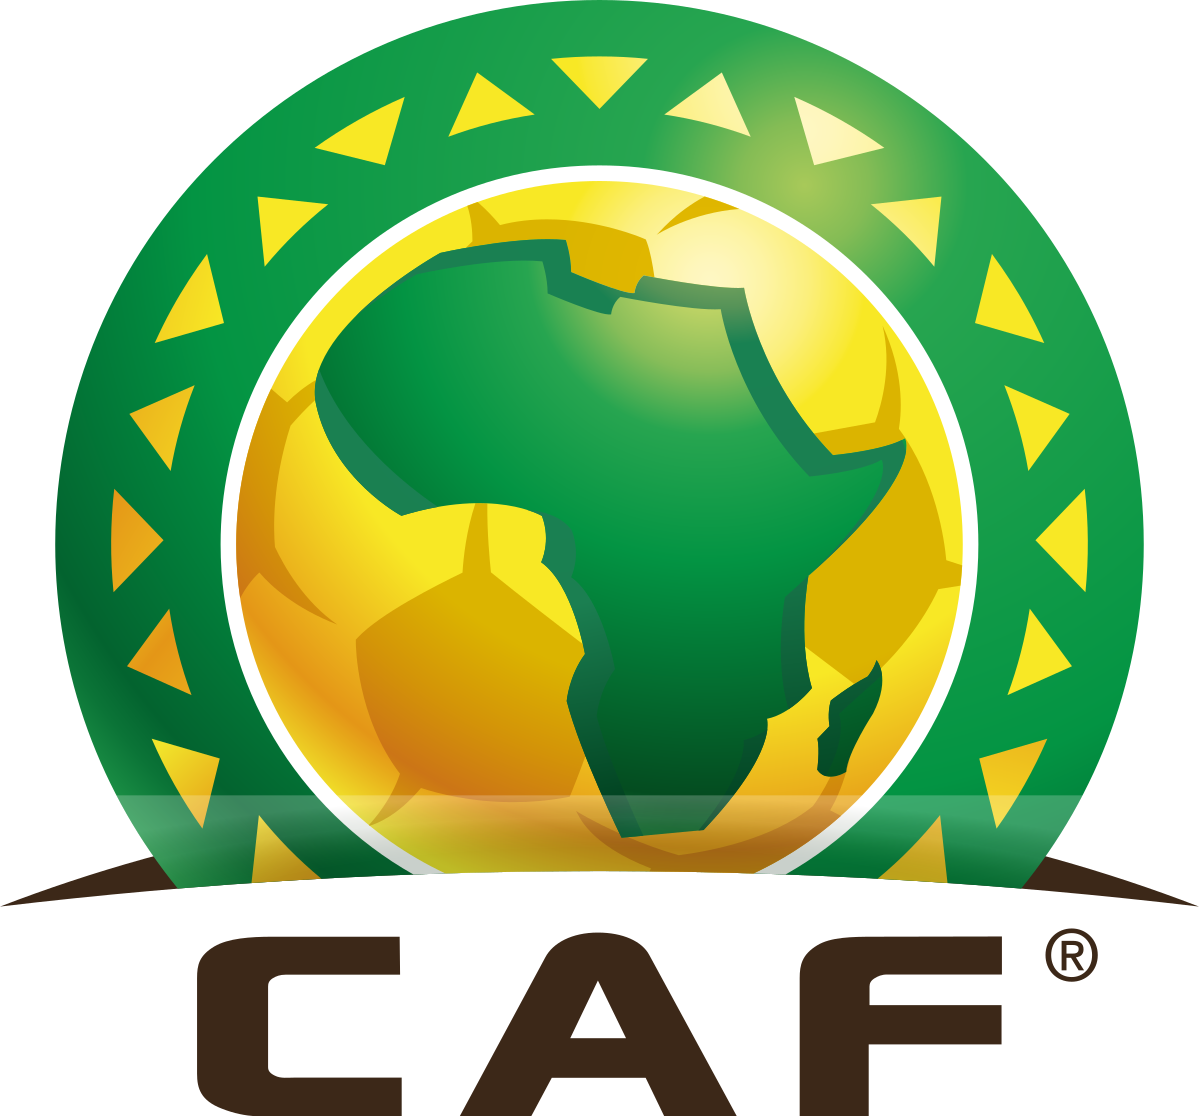 Format of 2022 World Cup qualifiers for Africa announced